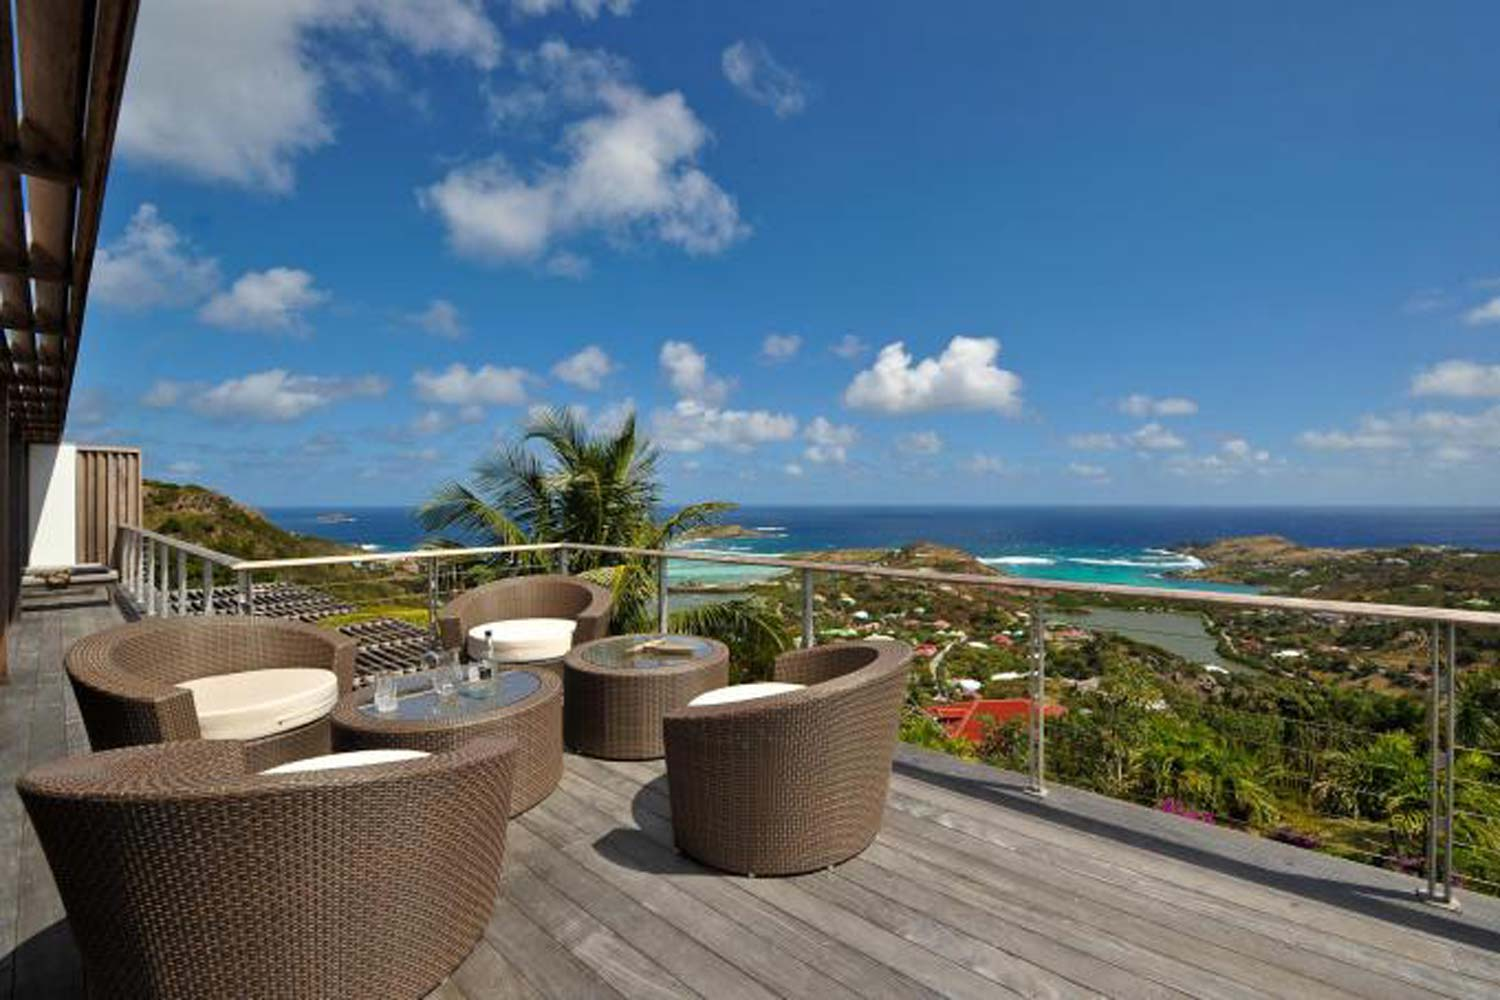 st-barth-exclusive-villa-casa-tigre-patio-ocean-view